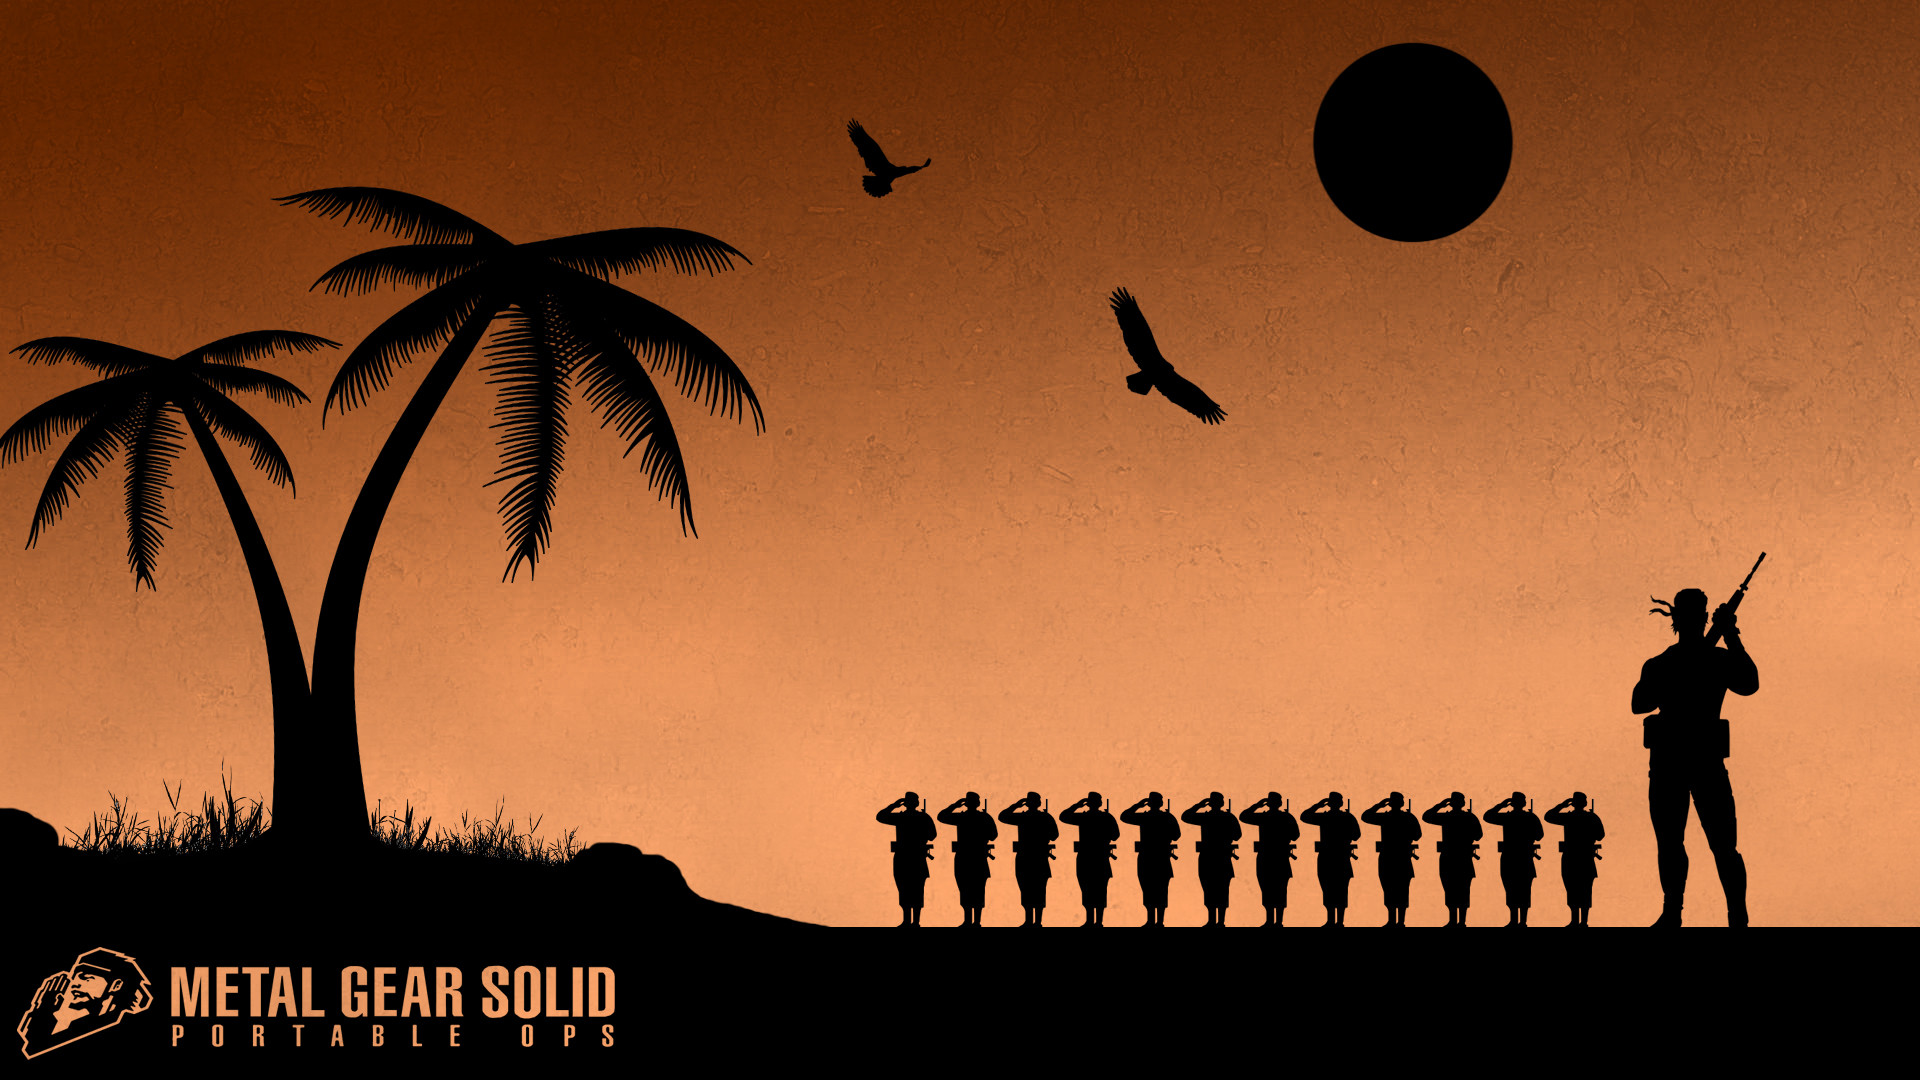 2 Metal Gear Solid: Portable Ops HD Wallpapers